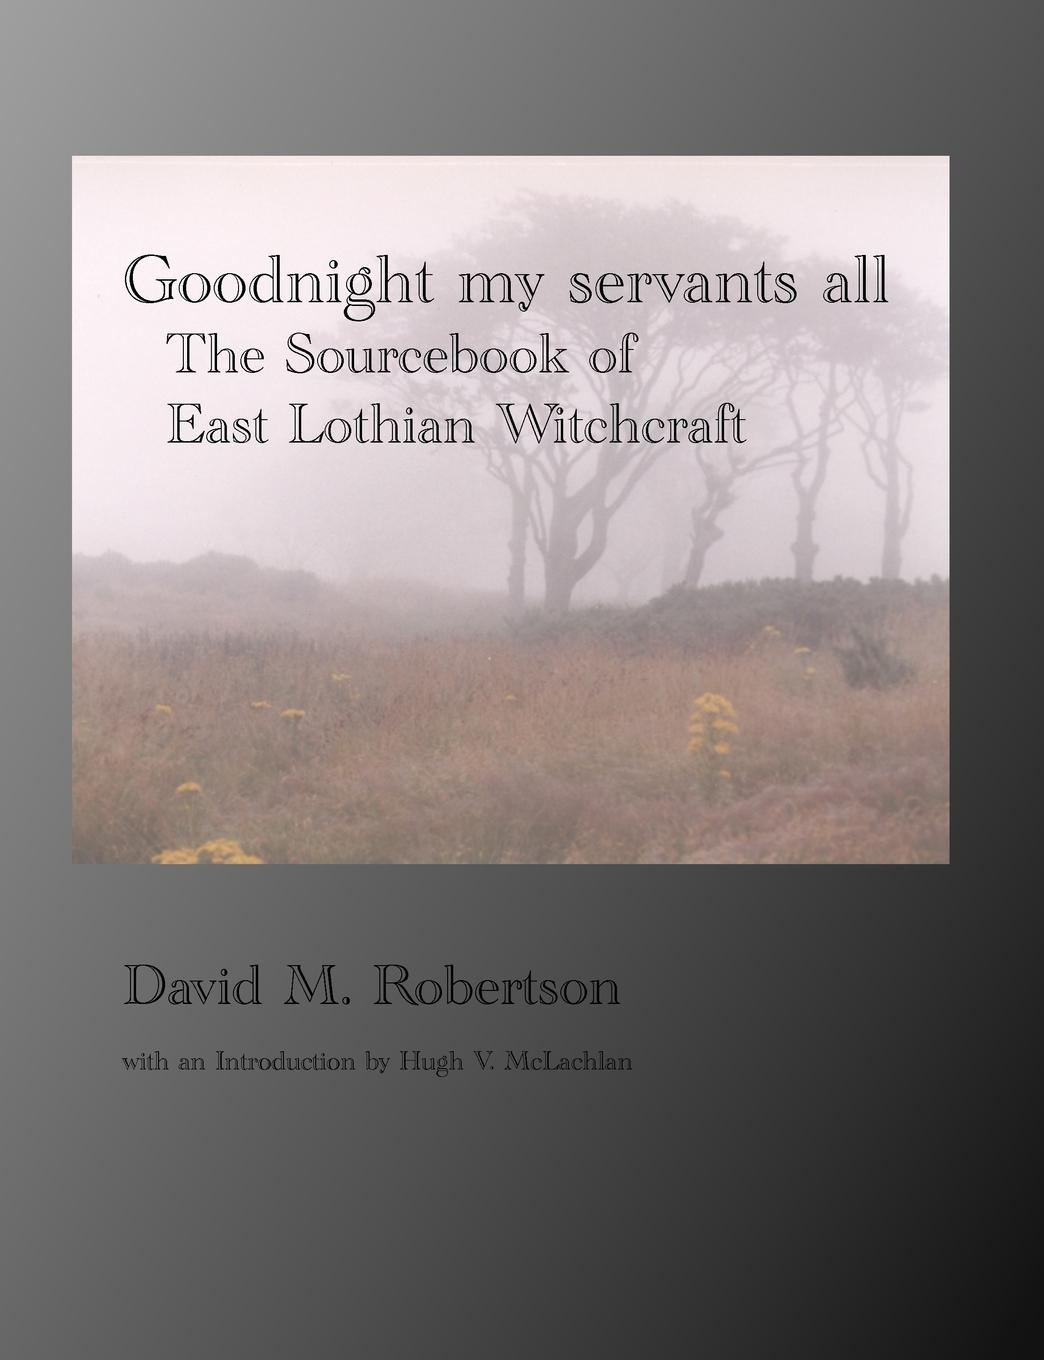 David M. Robertson Goodnight My Servants All. The Sourcebook of East Lothian Witchcraft witchcraft witchcraft legend